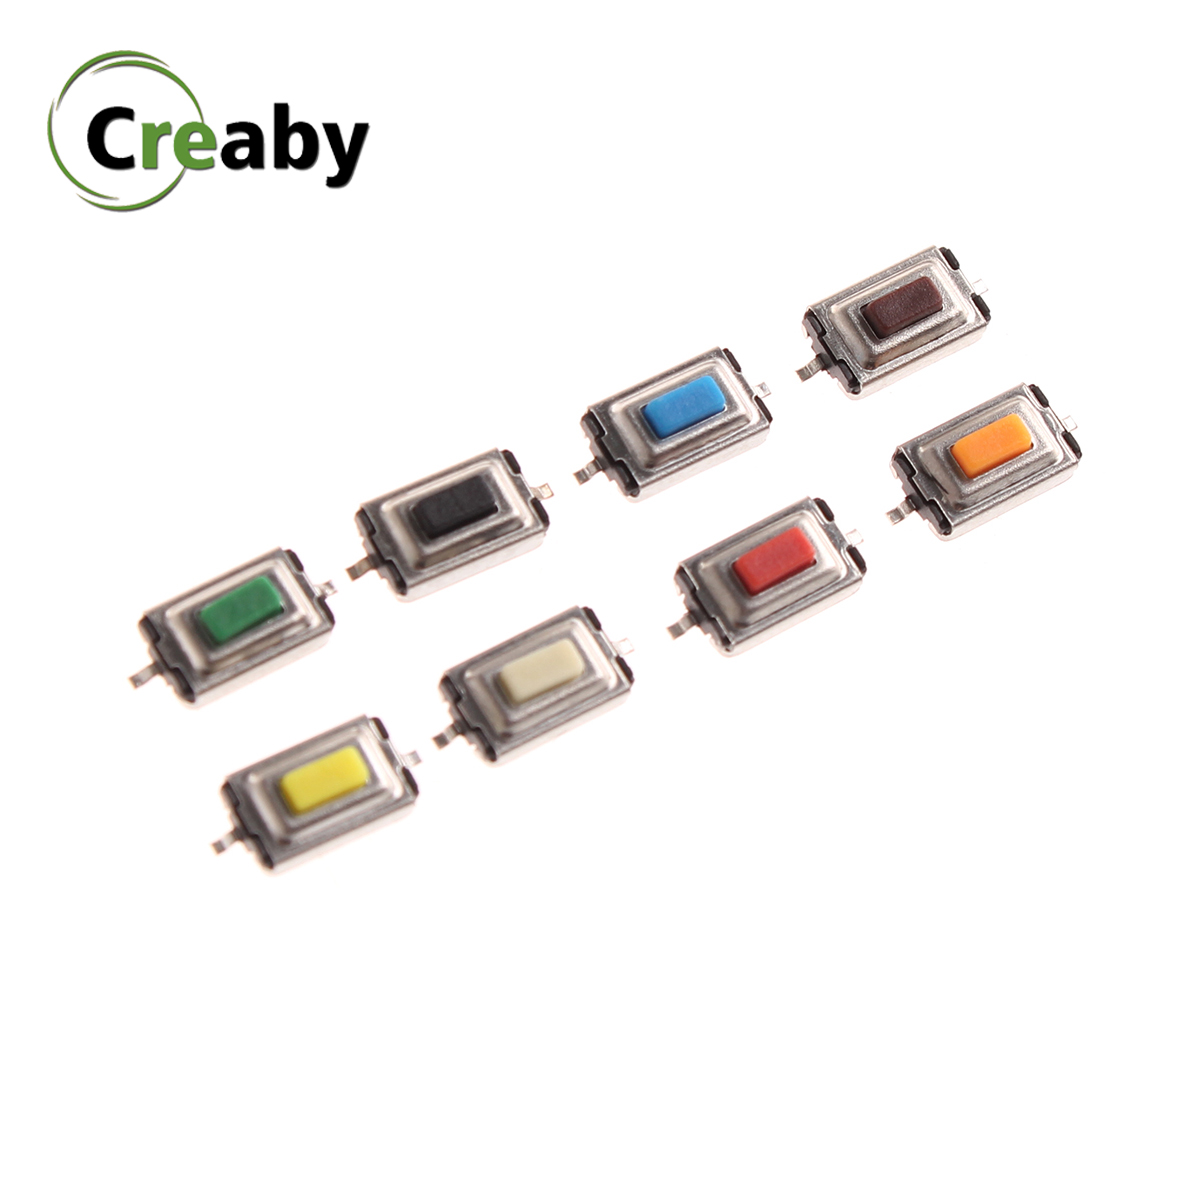 10PCS 3*6*2.5mm Microswitch 3x6x2.5mm SMD 2Pin Tactile Push Button Switch Tact Touch Micro Switch White Red Black Green Blue